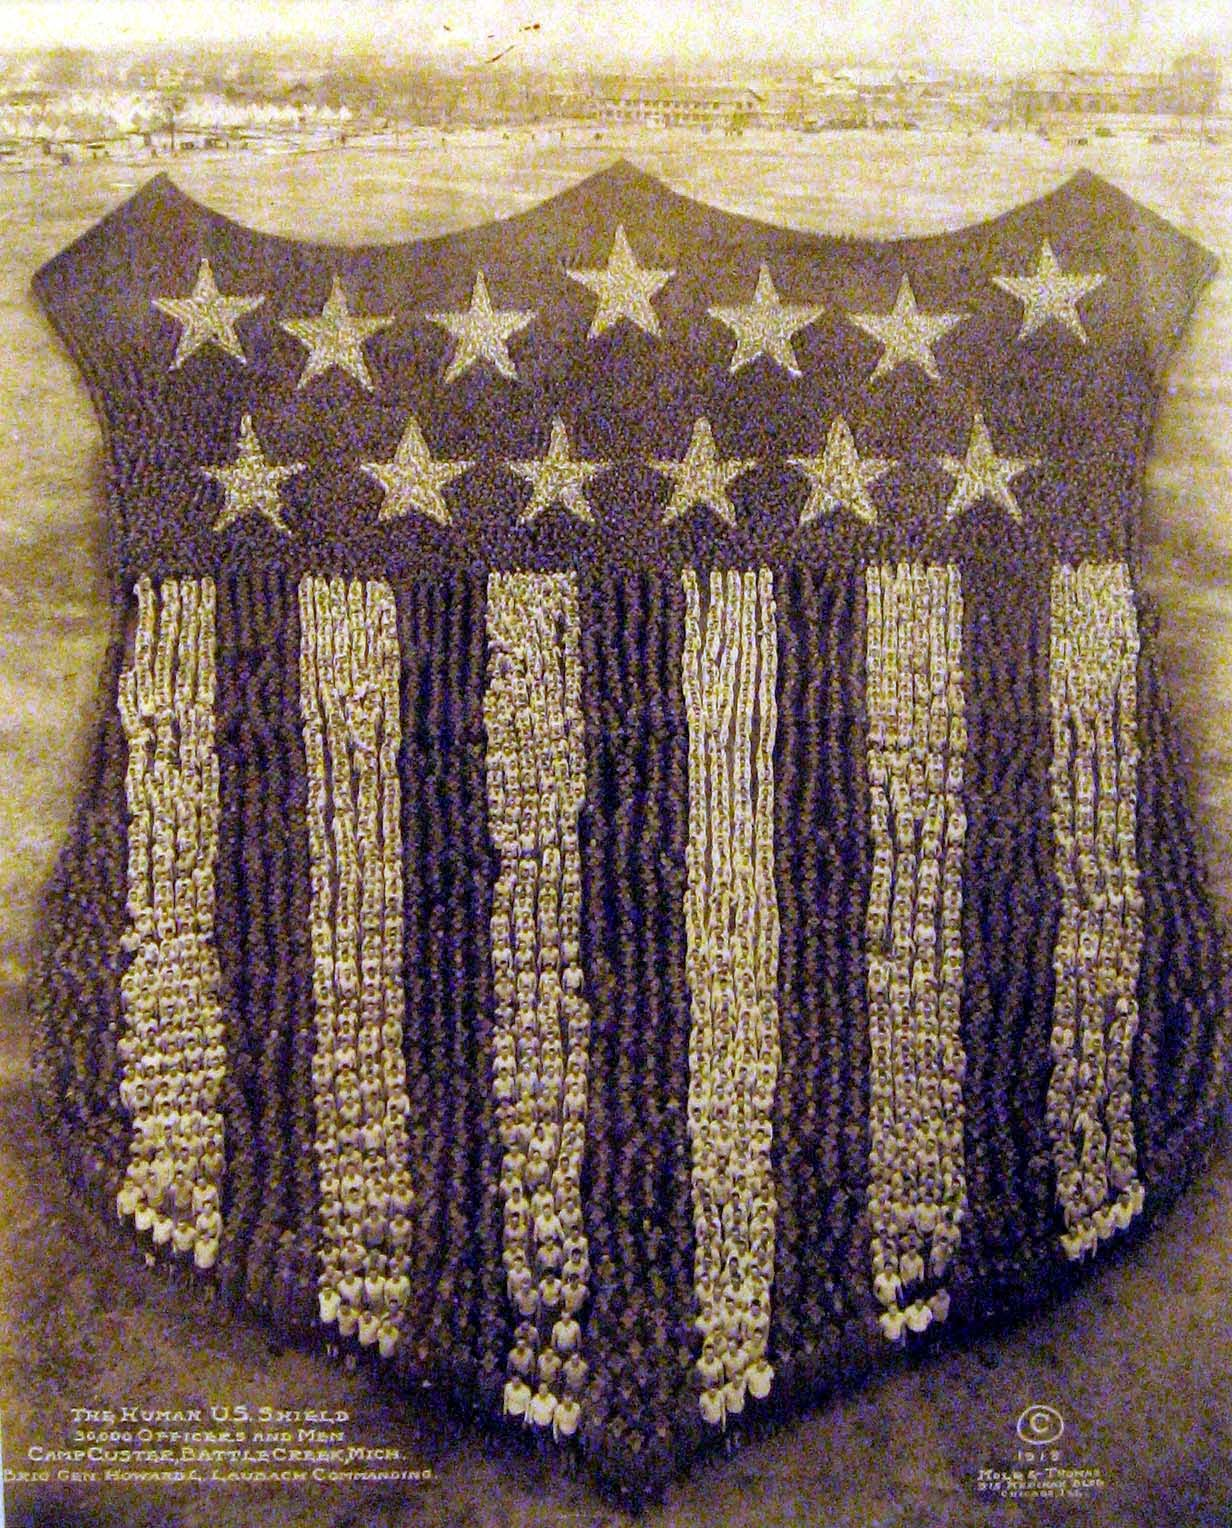 The Human U.S. Shield, 1918, Camp Custer, Michigan, 30,000 oficiales y hombres.